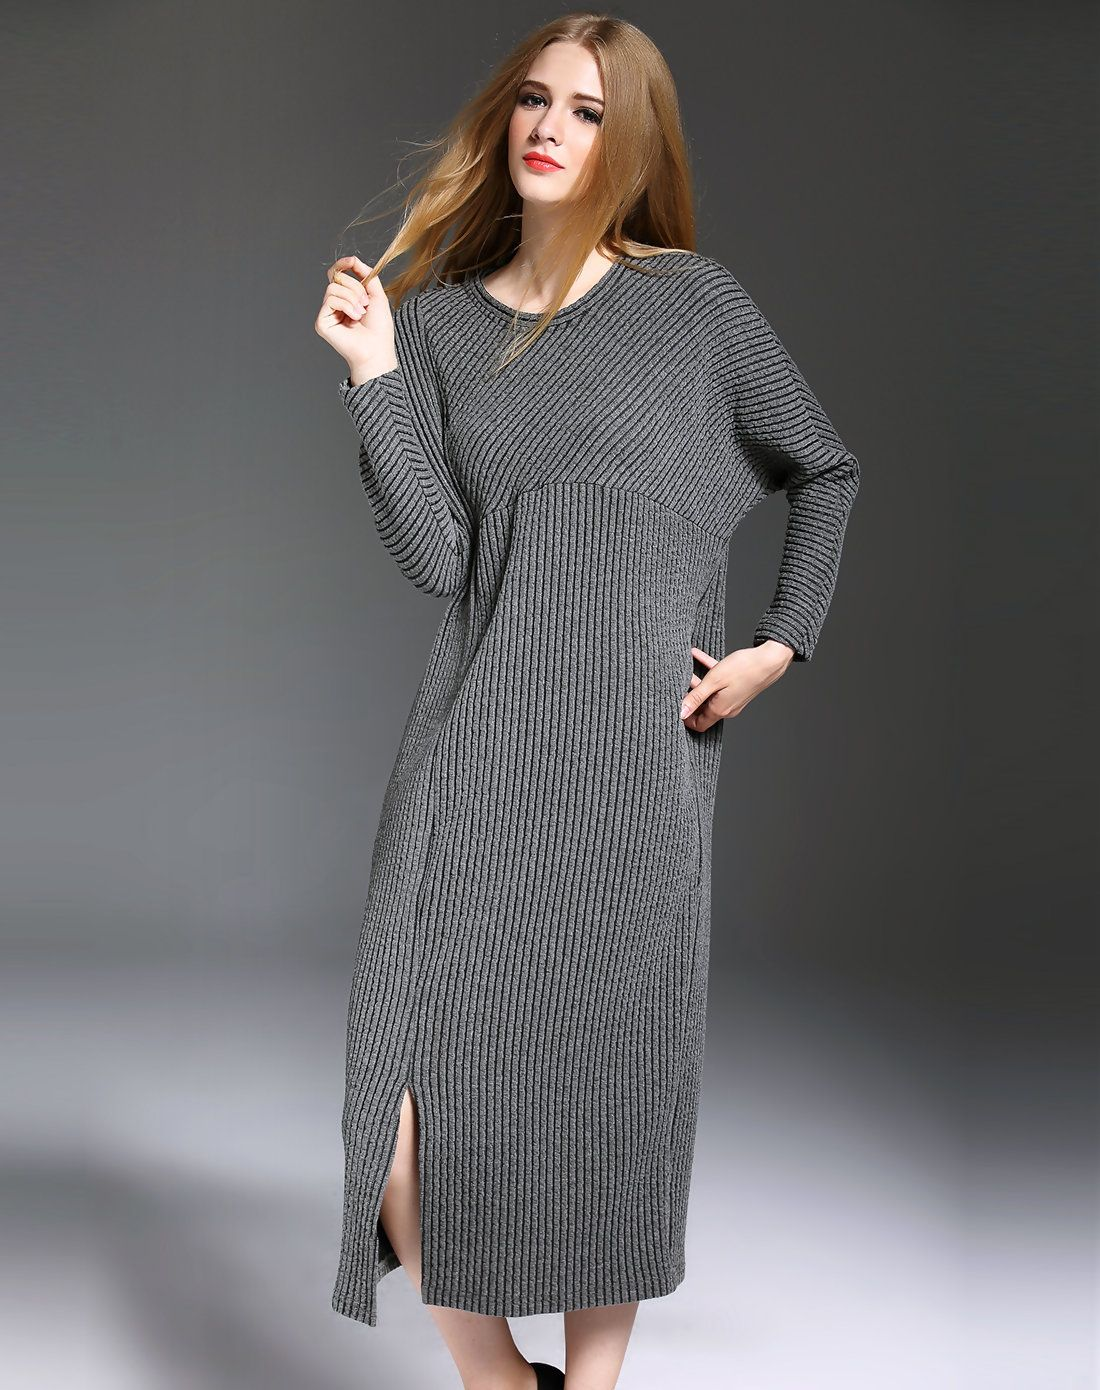 Adorewe vipme sweater dresses esdannuo knitted jacquard long